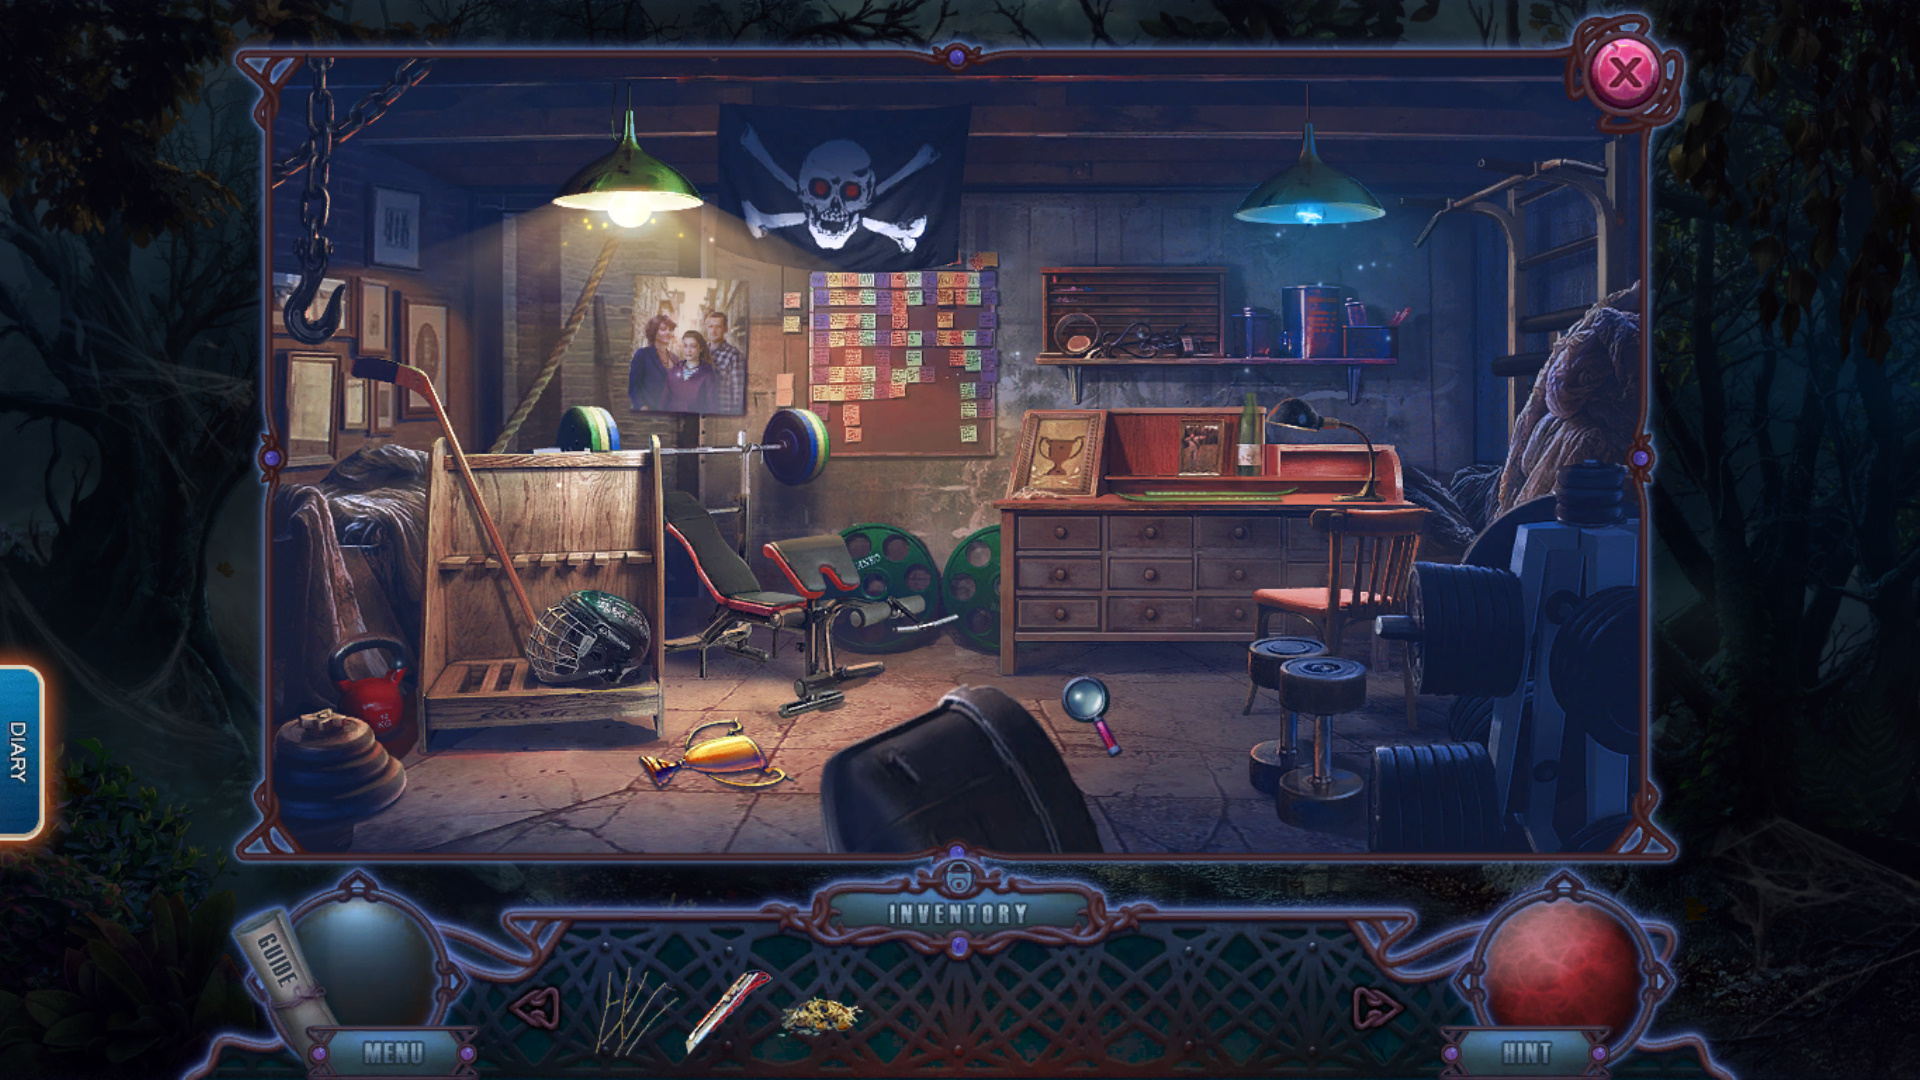 The Forgotten Fairytales: The Spectra World Collectors Edition (2019/PC/Английский), Unofficial